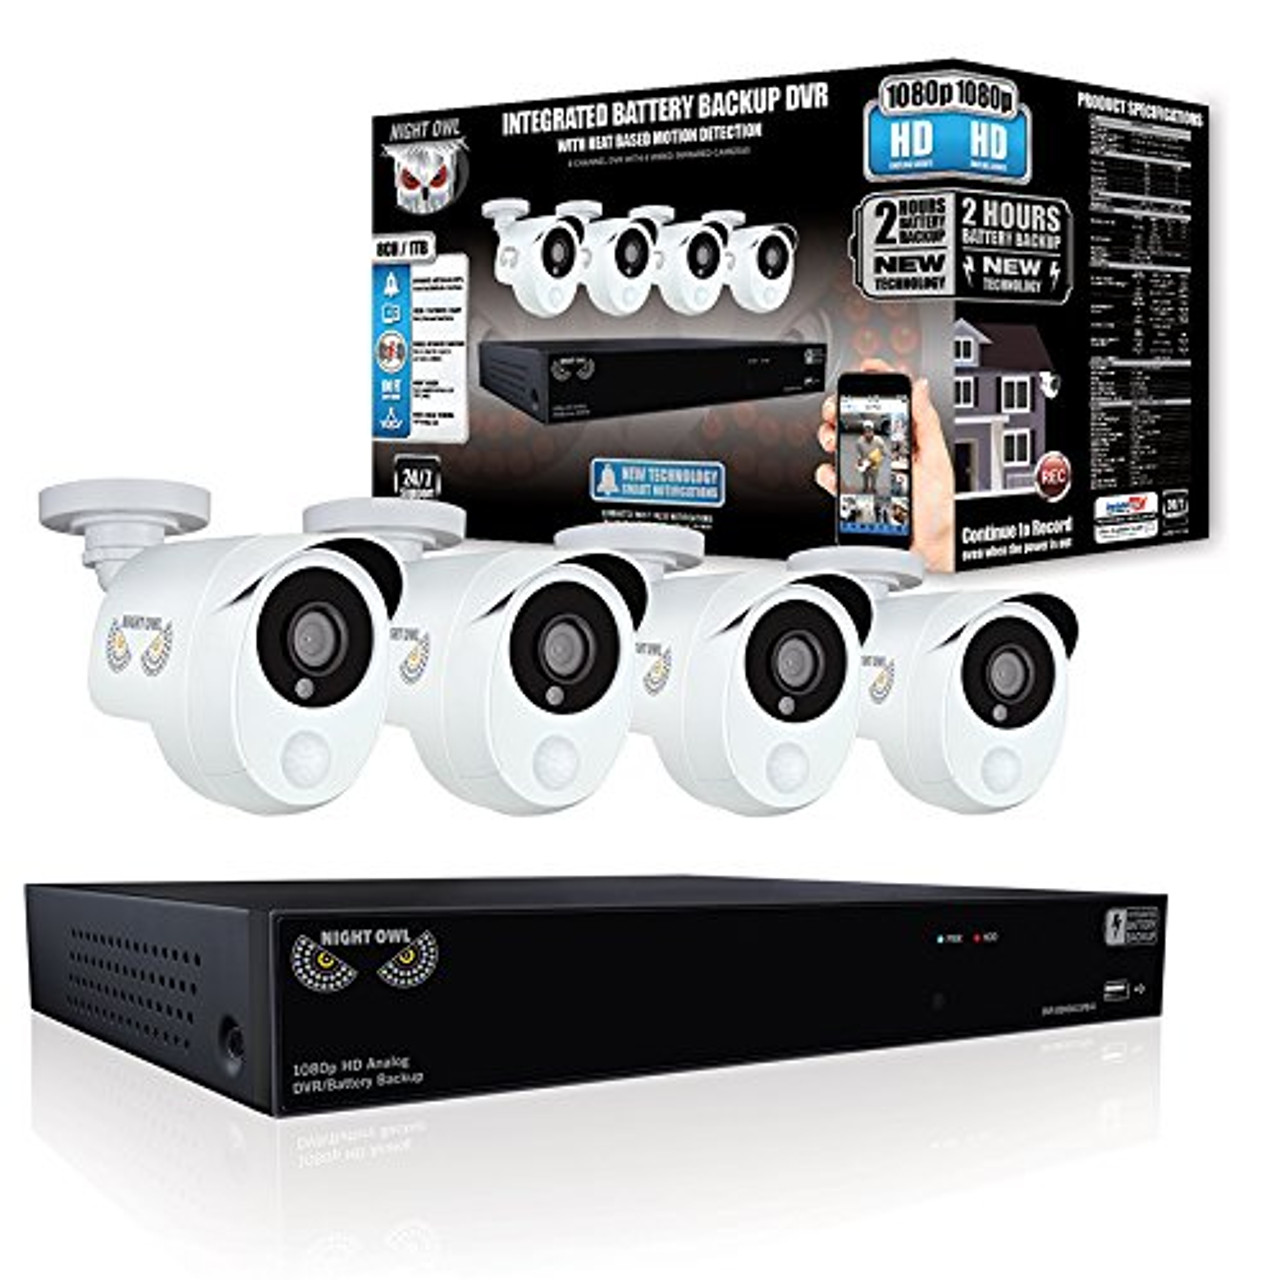 Night Owl HDA10P-841-BBPIR-R 8 Channel, 4 Camera PIR Indoor/Outdoor Wired 1080p 1TB DVR Integrated Battery Backup Surveillance System - Certified Refurbished